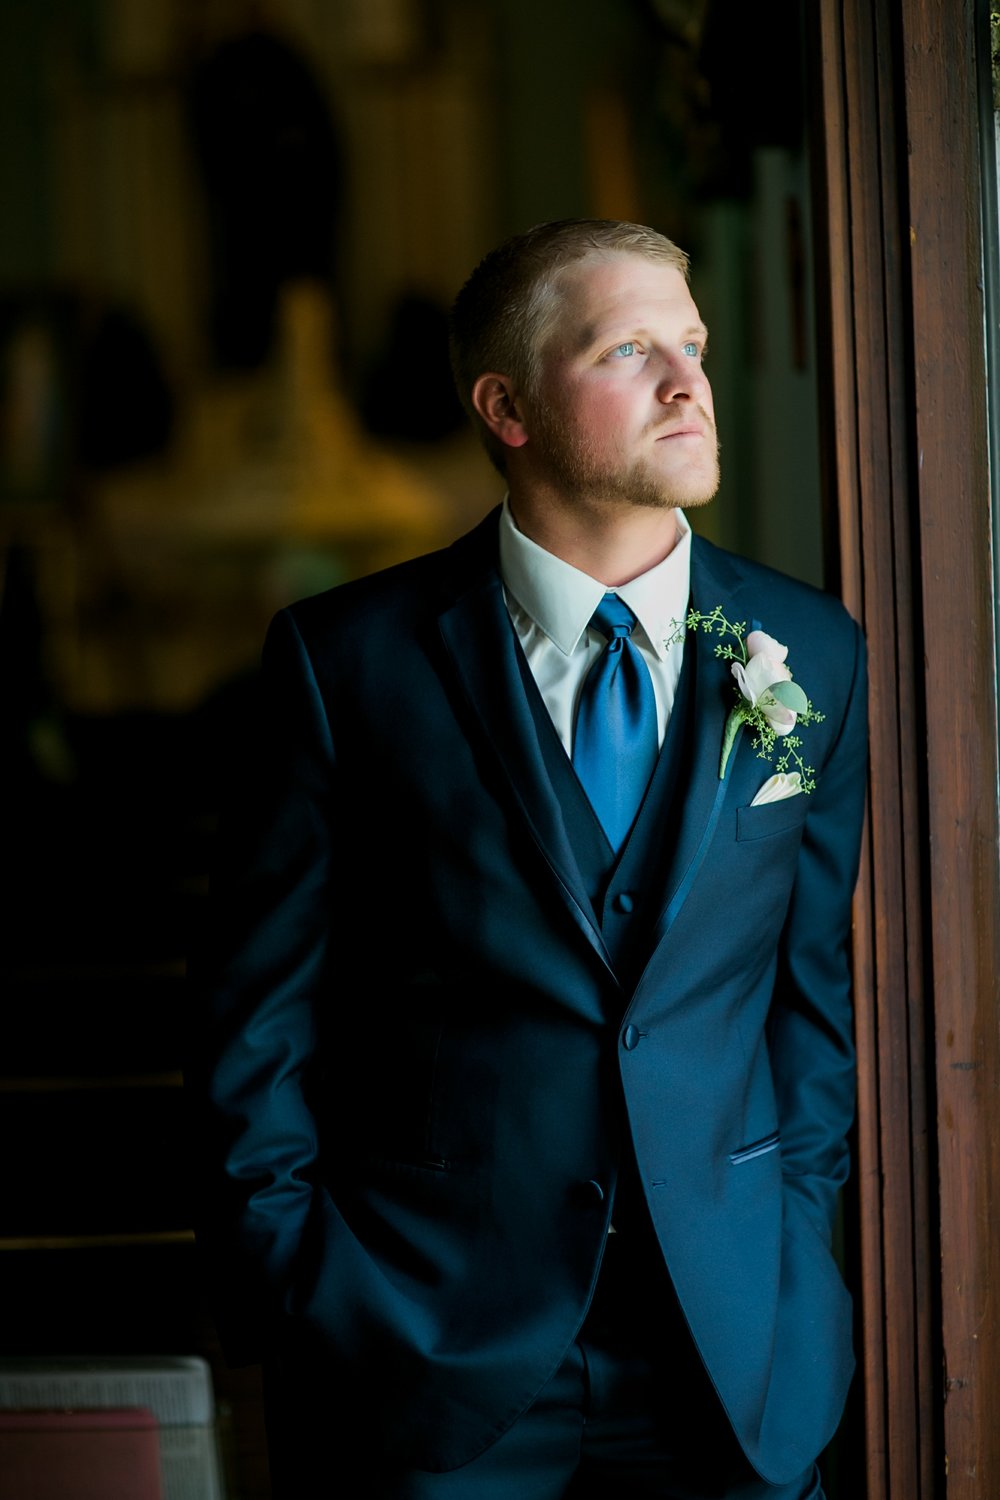 windthorst-st-mary-catholic-church-parish-hall-sharp-arrow-events-jameson-flowers-wichita-falls-wedding-photography-033.jpg